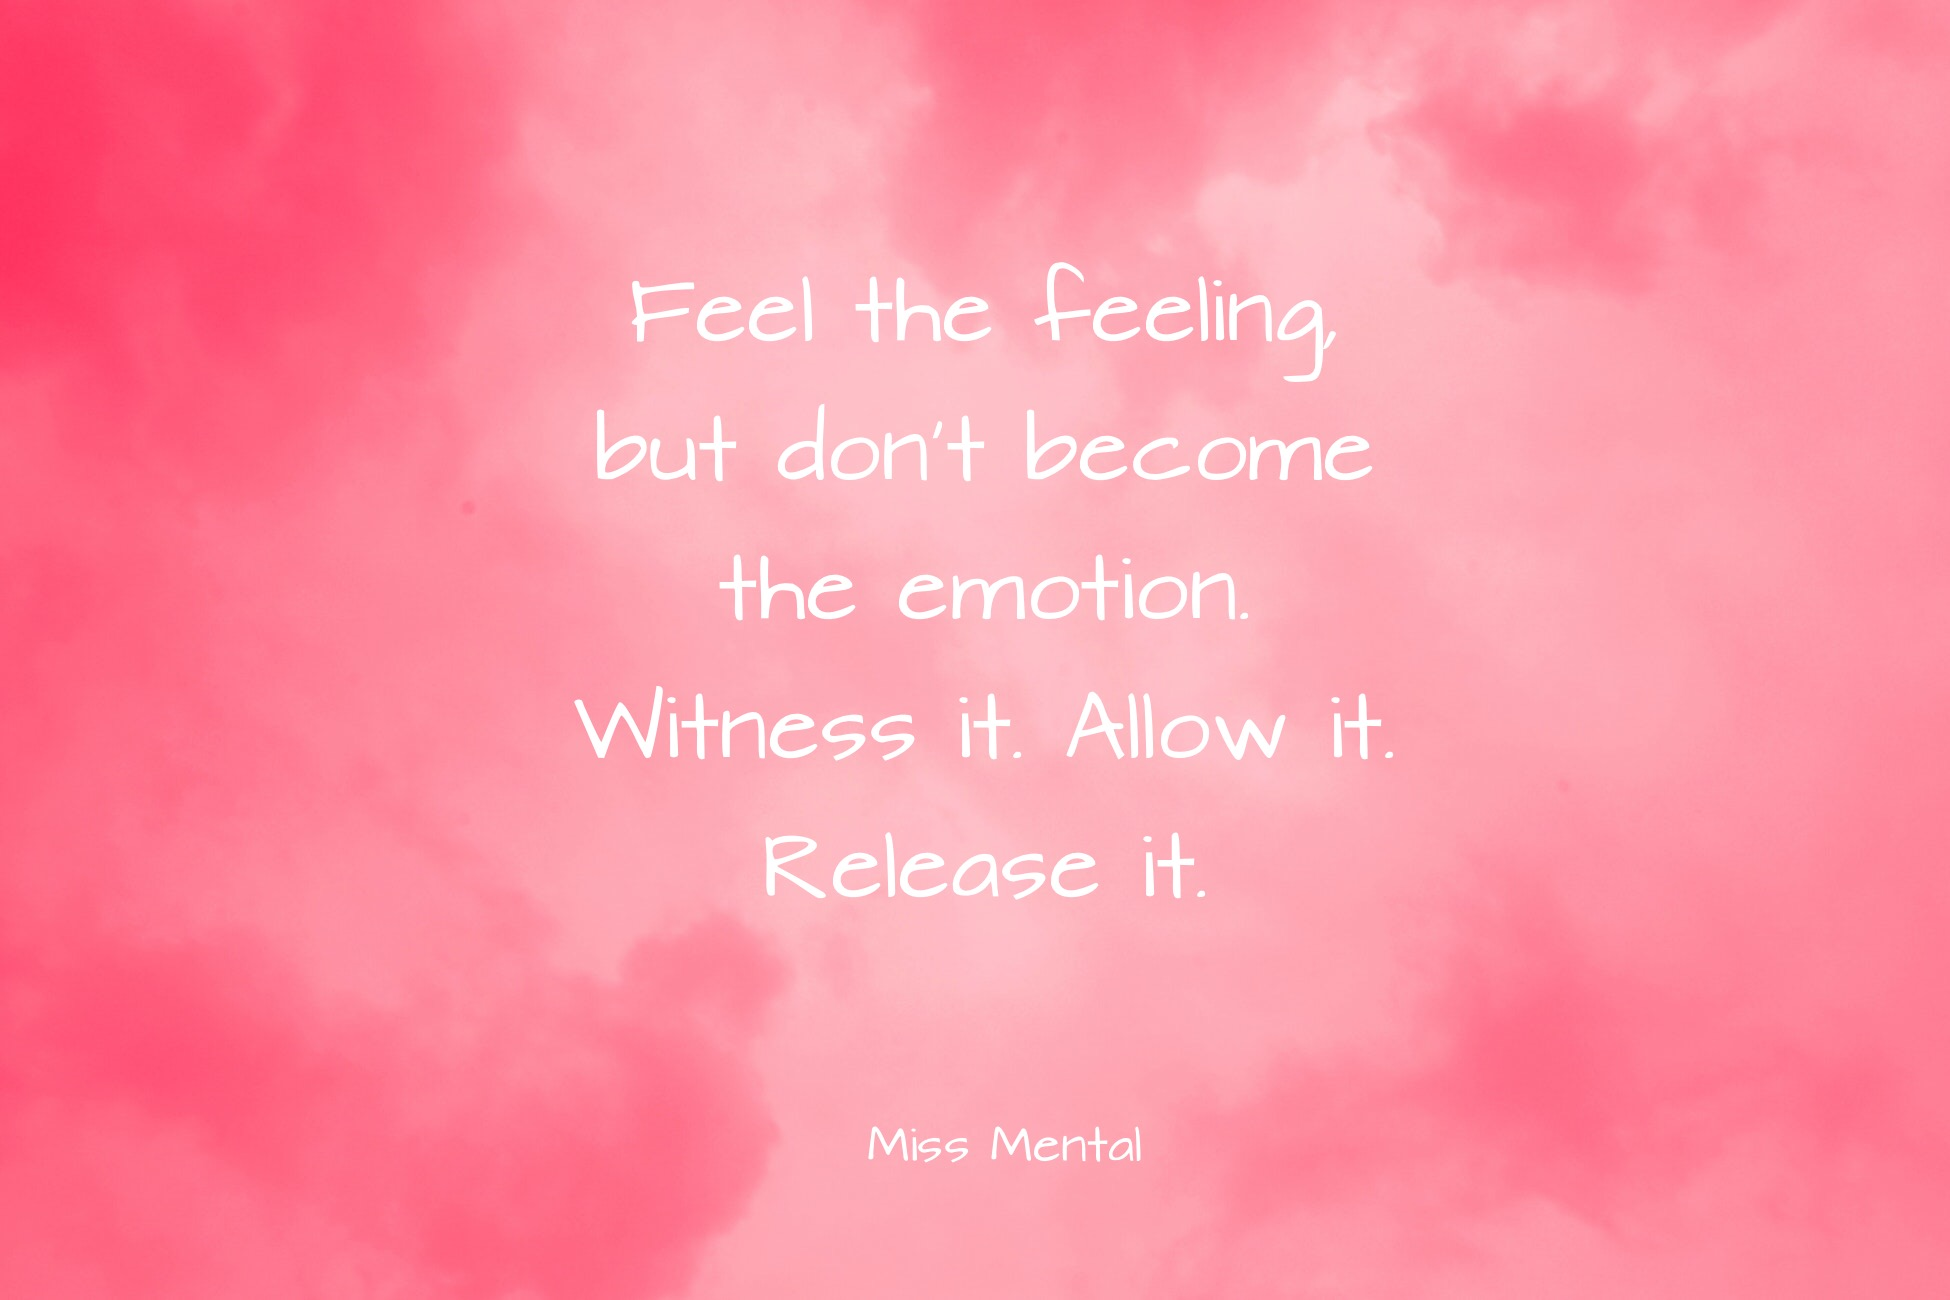 Inspirational quote 6 miss mental